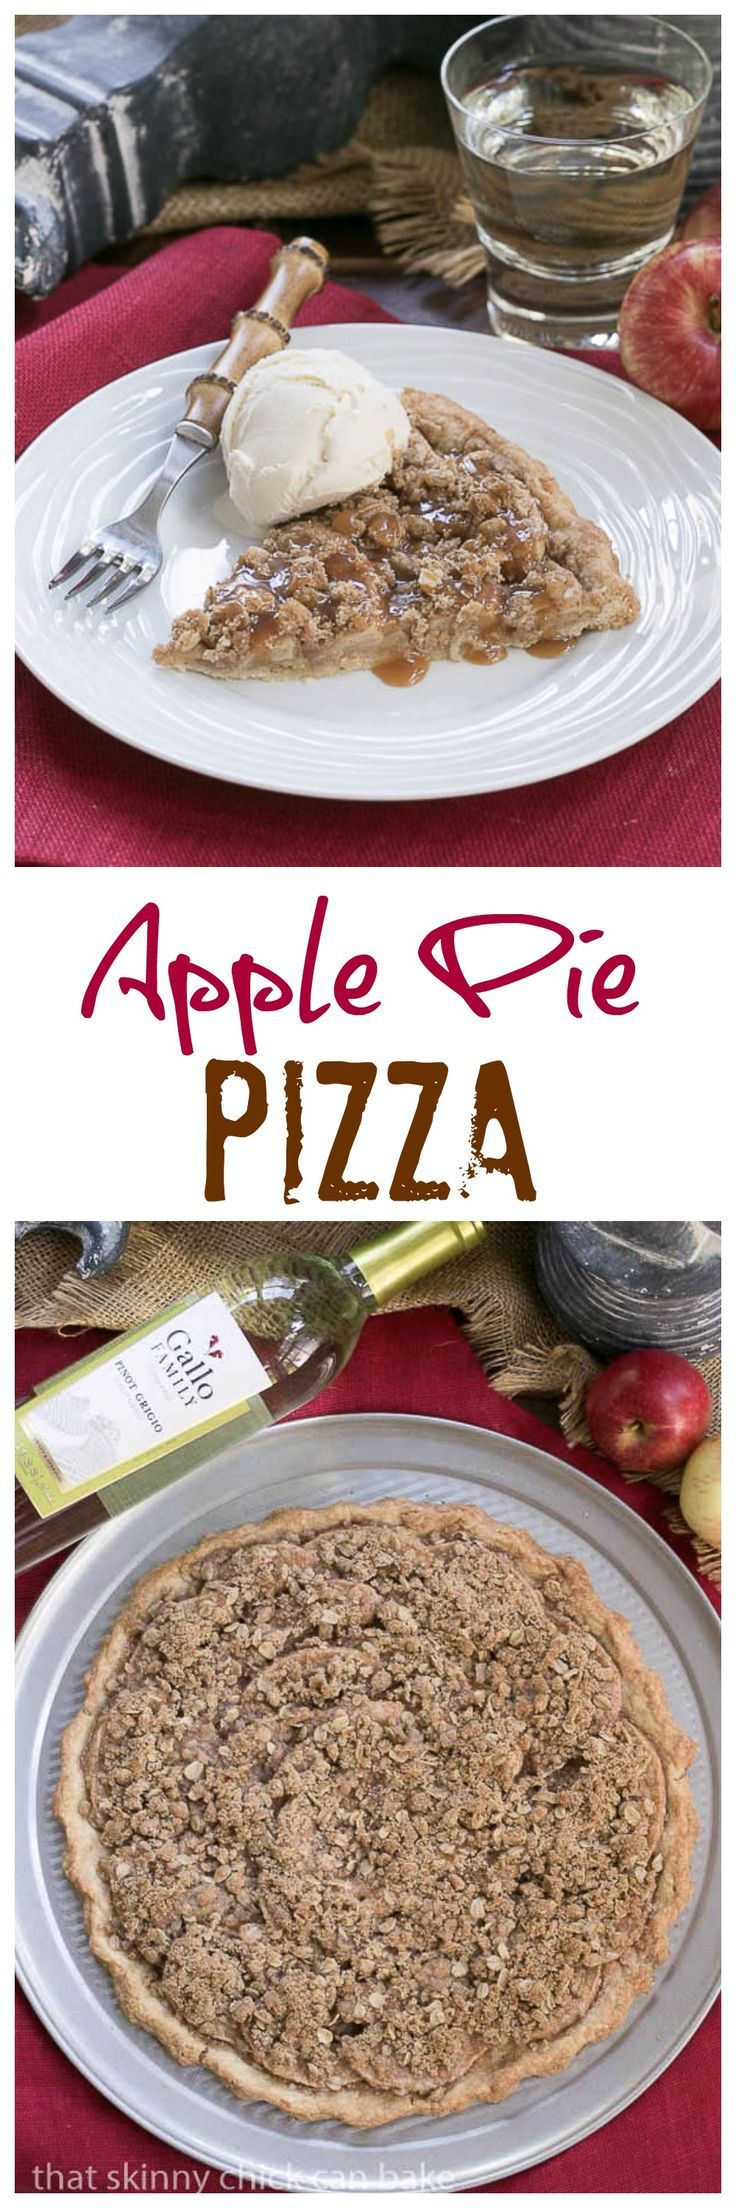 Apple Pie Pizza   A dessert pizza made with a pastry crust, spiced apples, streusel and drizzled with caramel @lizzydo